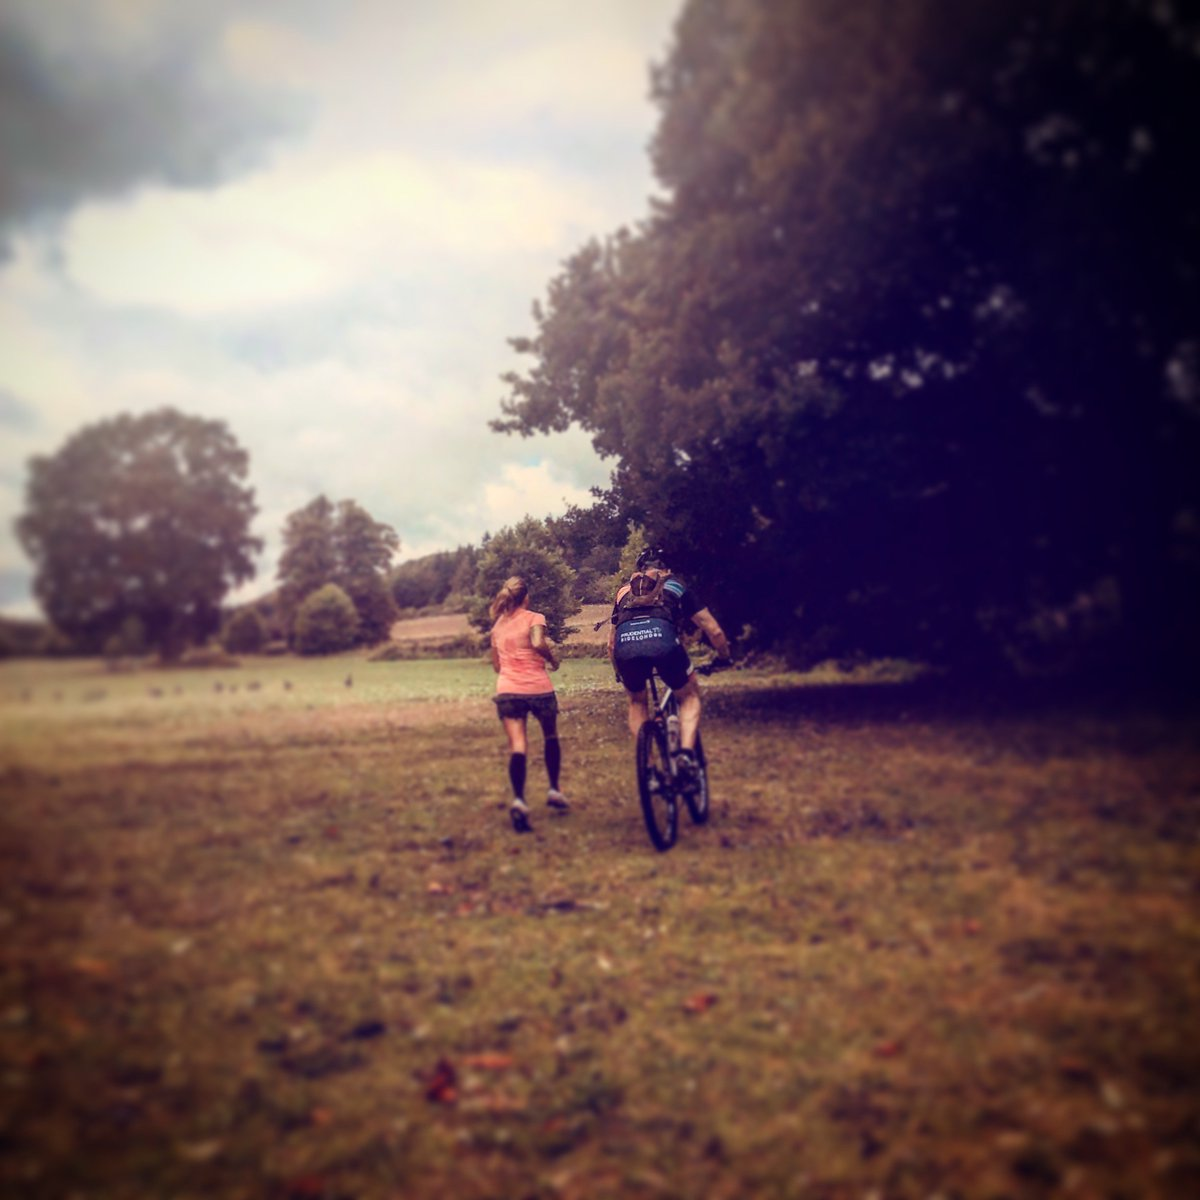 RT @Kellys_C_Events Yesterday we spent the morning with endurance runner @Susie__Chan as she checked out the route at @LoseleyPark for the Kelly's Cross Country Challenge coming up on 14 Oct. It's a fantastic run & every penny raised goes to @D_Challengers Fancy joining us? https://t.co/7wHu8L5YbO